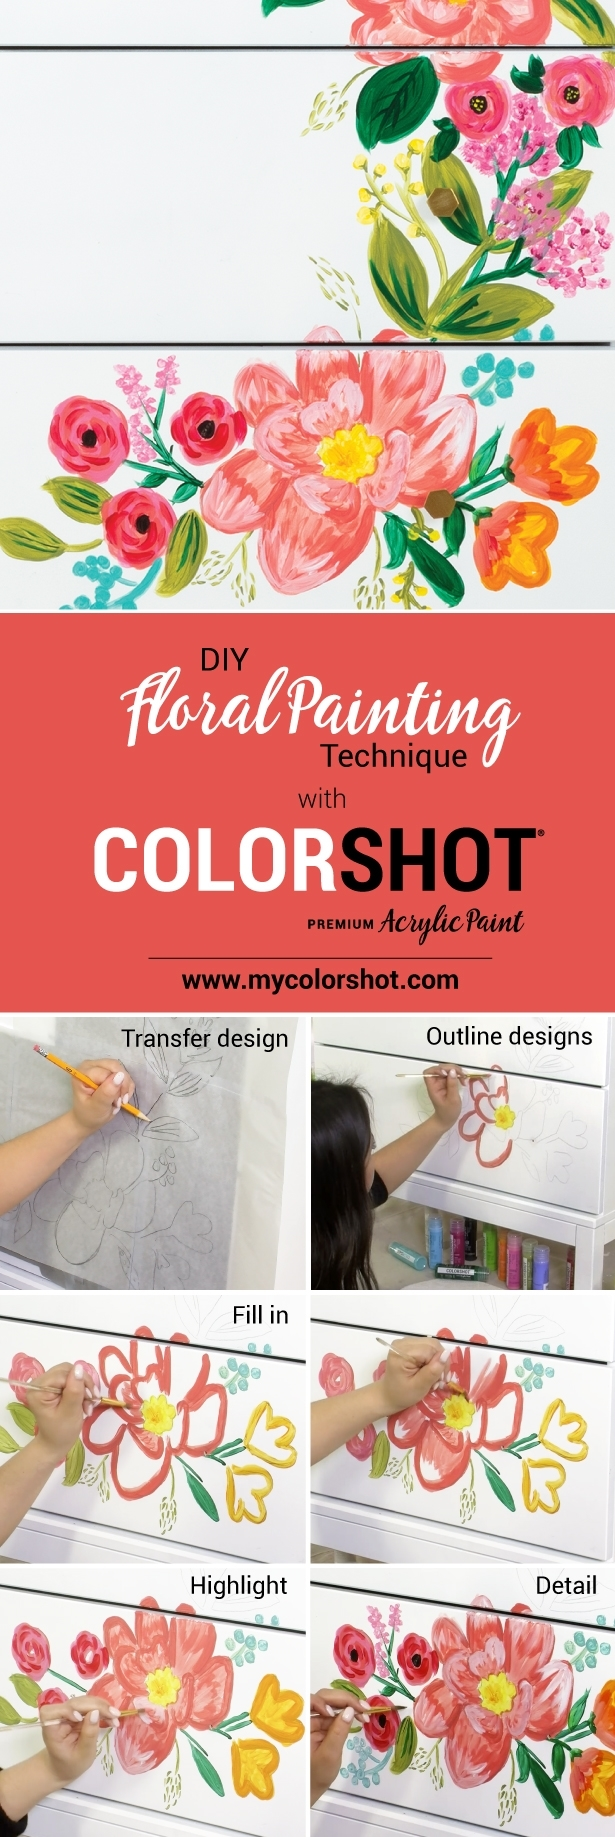 COLORSHOT Statement Pieces Floral Painting Technique